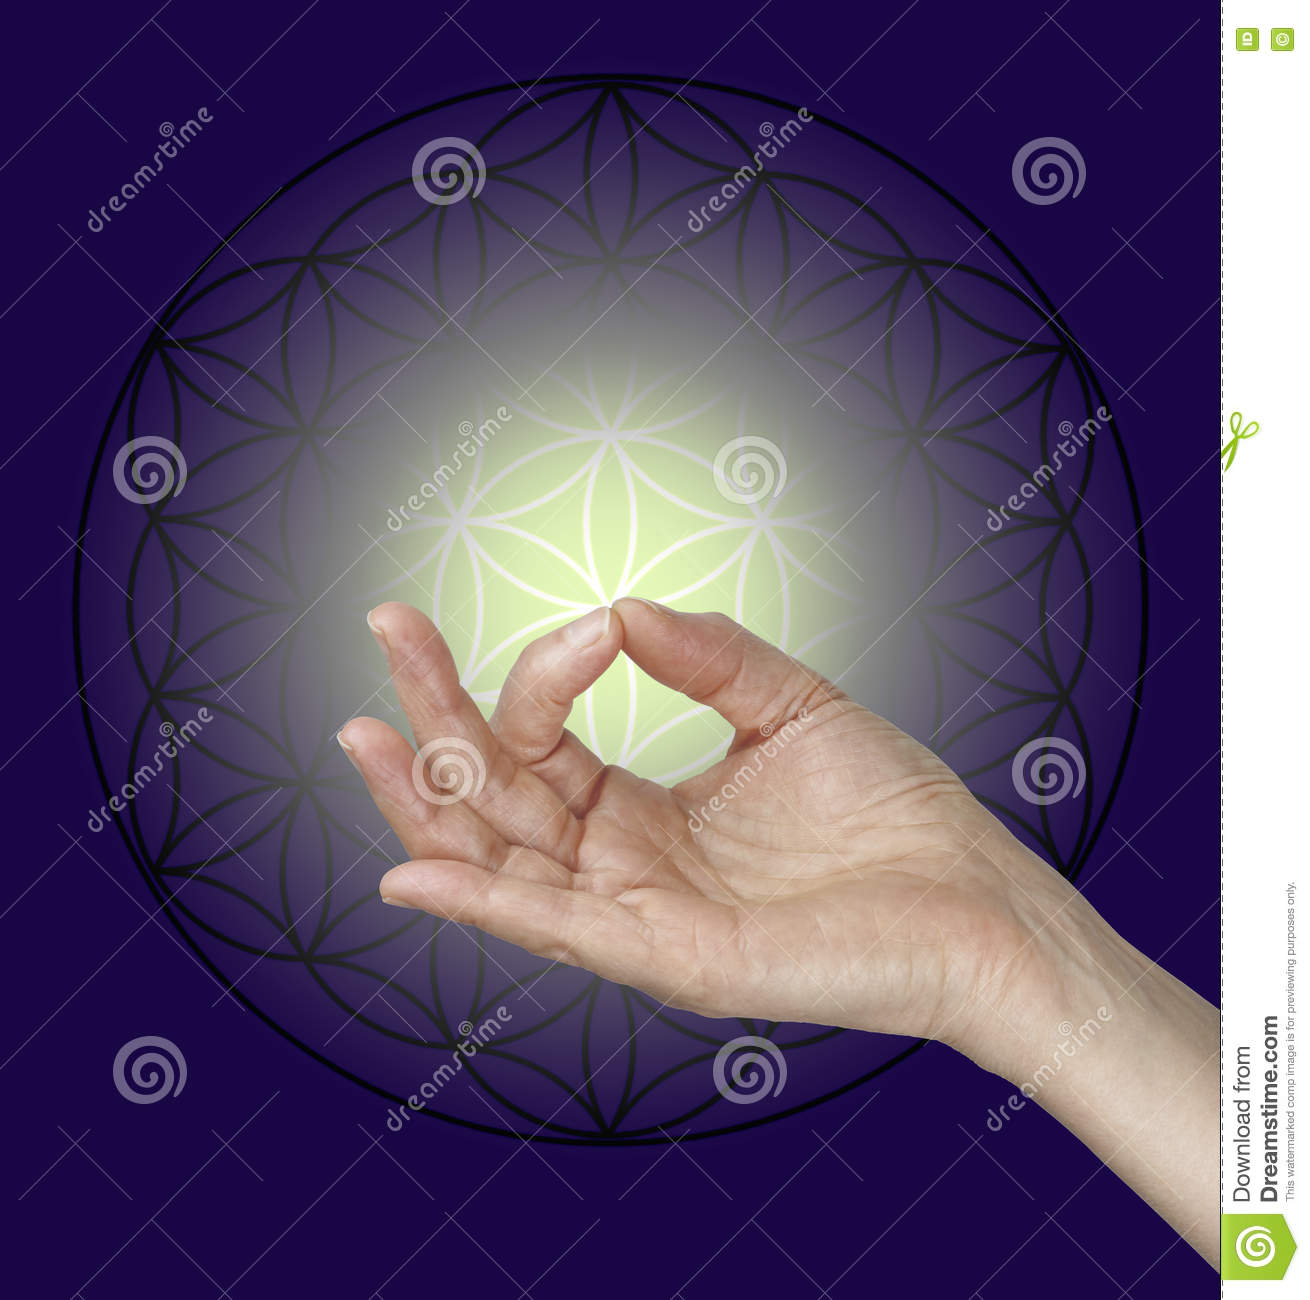 Gyan Mudra And The Flower Of Life Symbol Stock Photo - Image